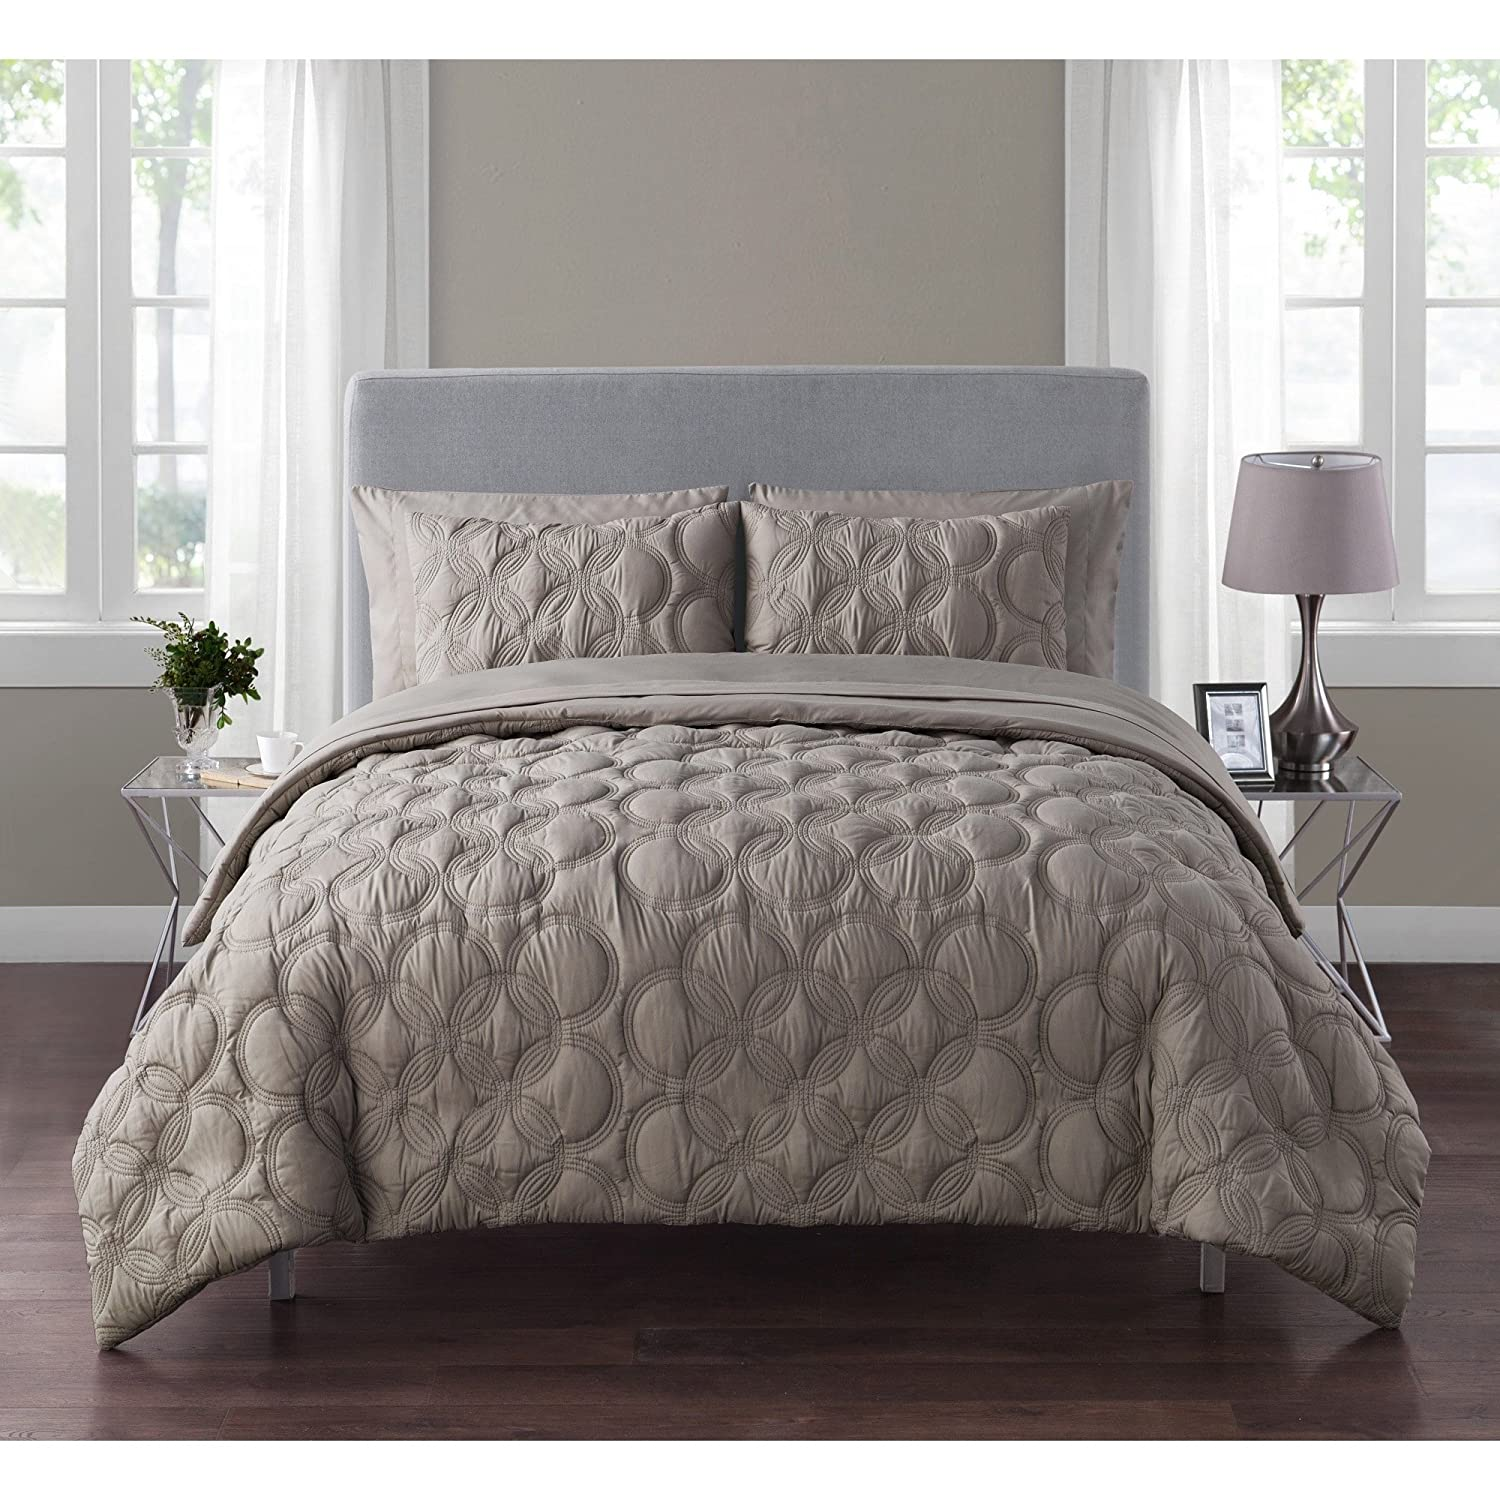 Amazon.com: VCNY Home Atoll Embossed 7 Piece Bed-in-A-Bag ... on